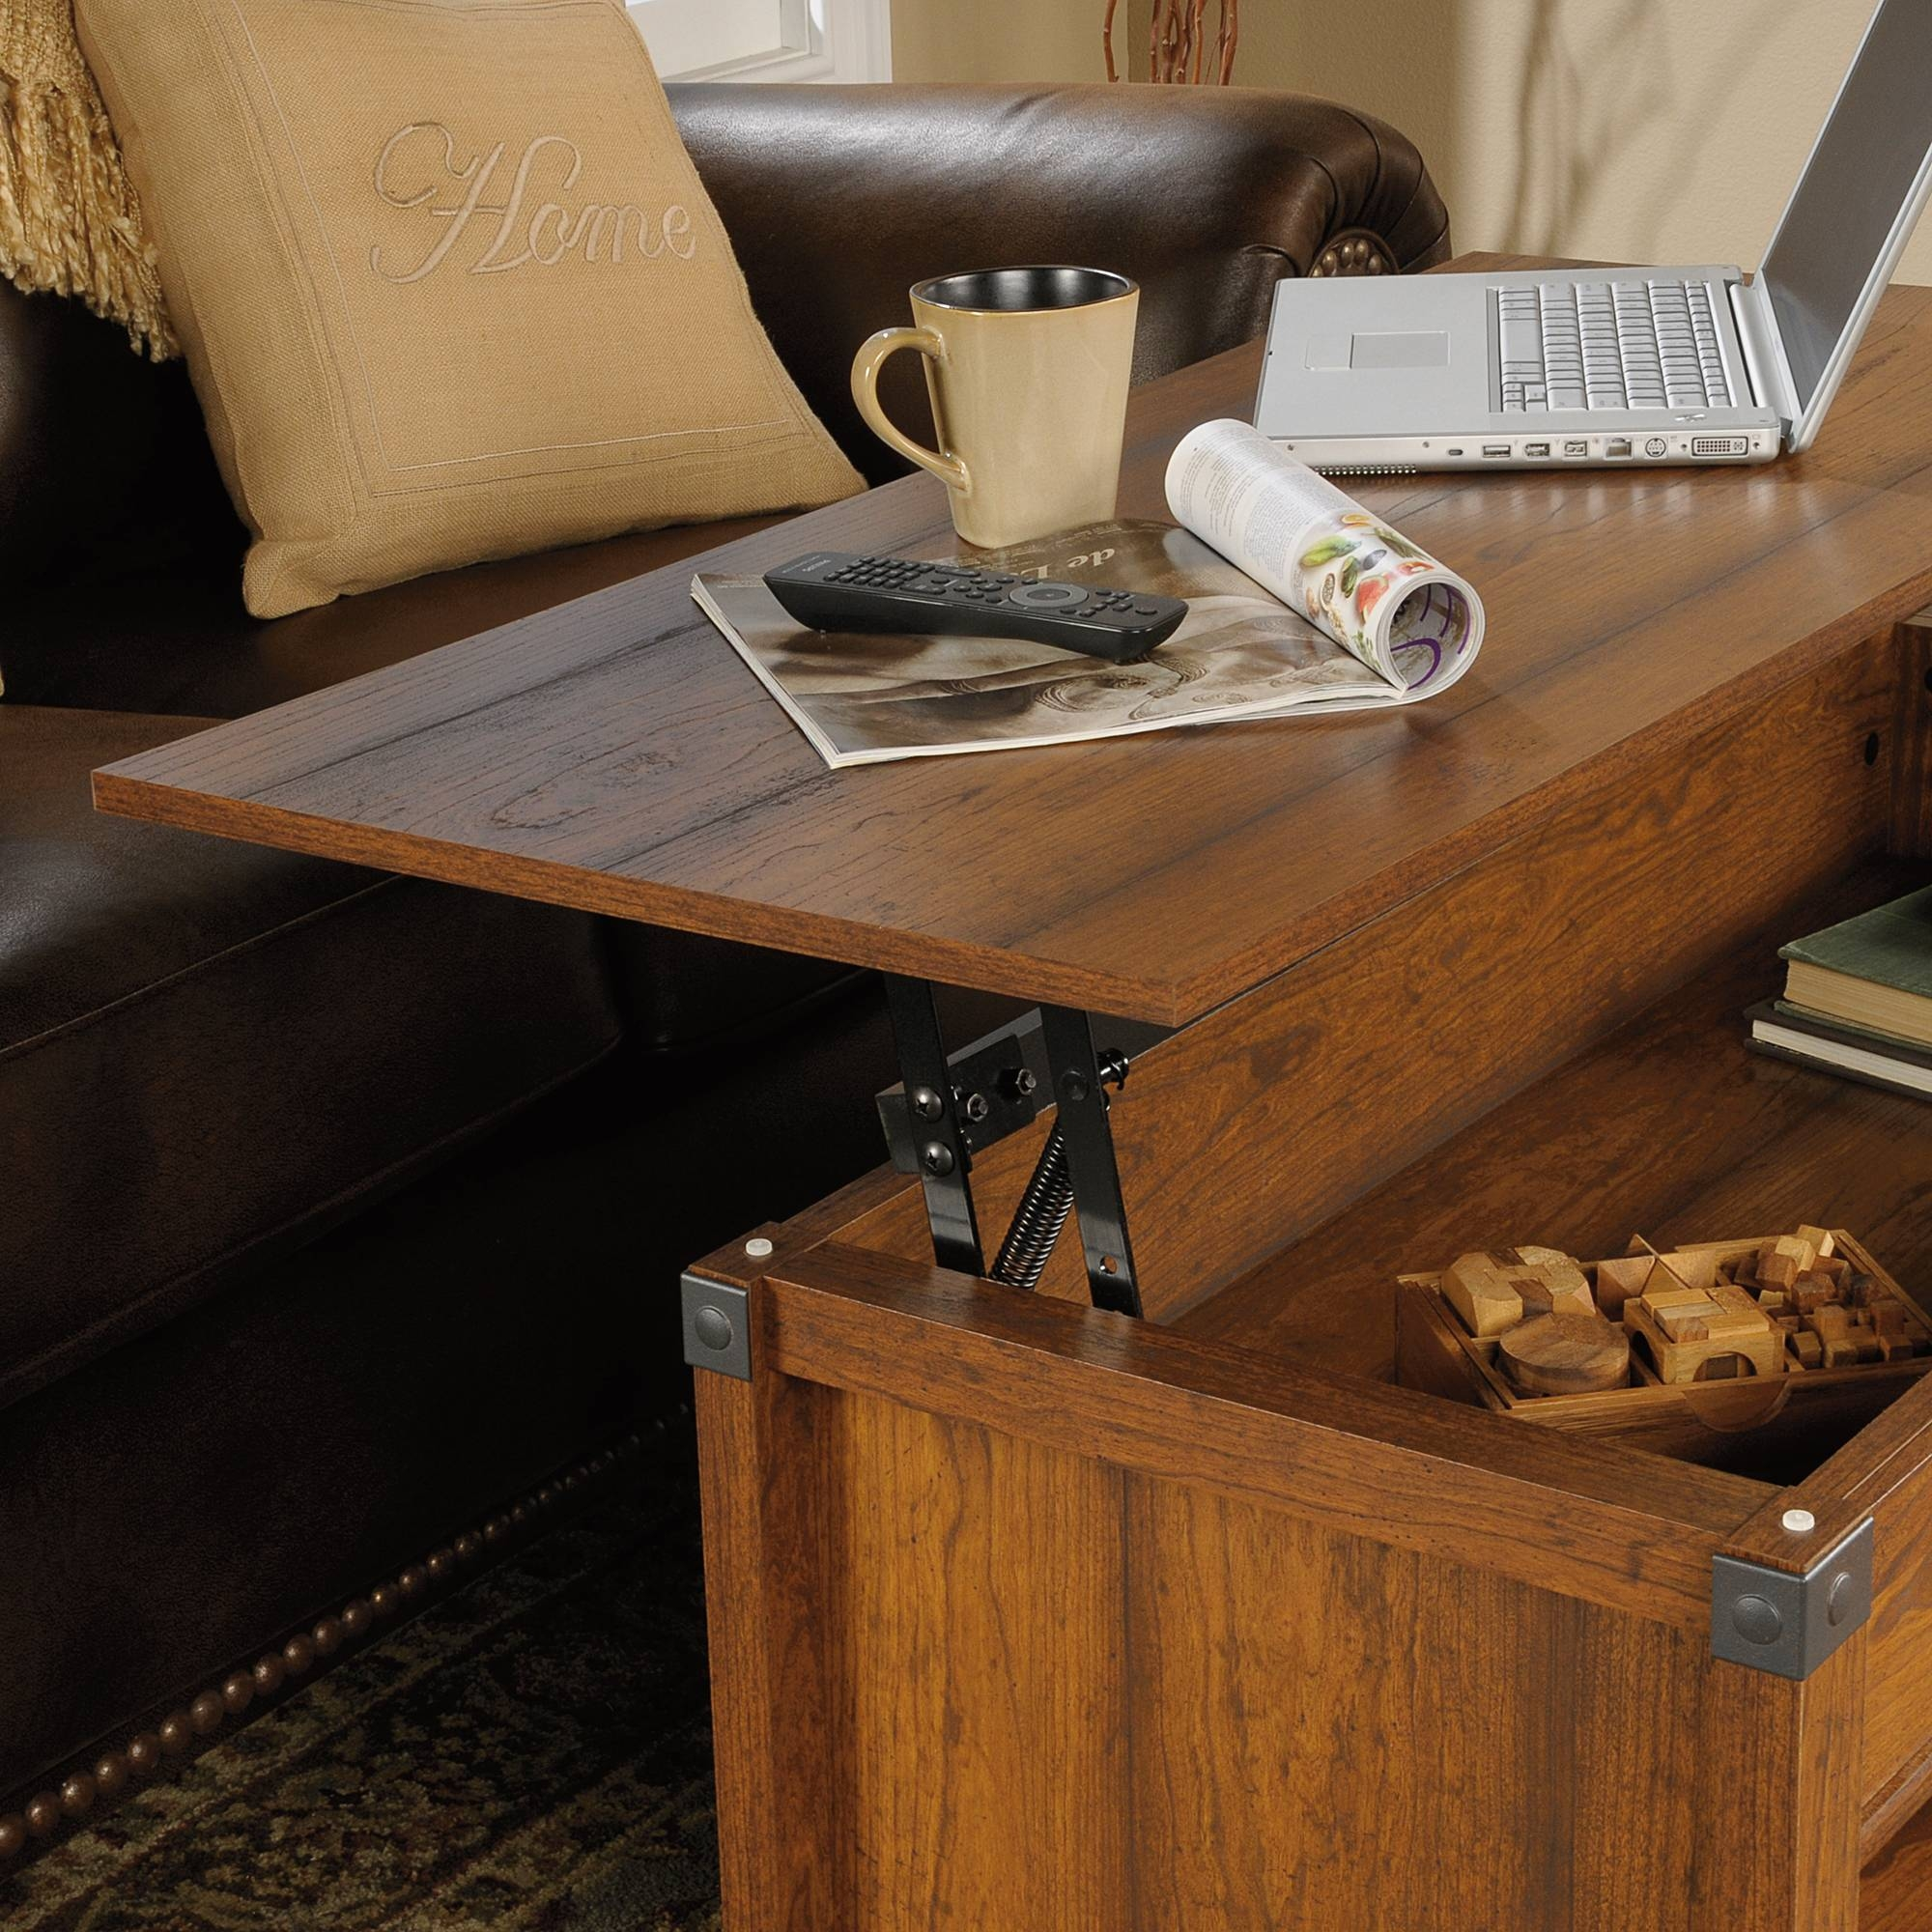 Carson Forge | Lift-Top Coffee Table | 414444 | Sauder within Lift Top Coffee Tables With Storage (Image 4 of 30)